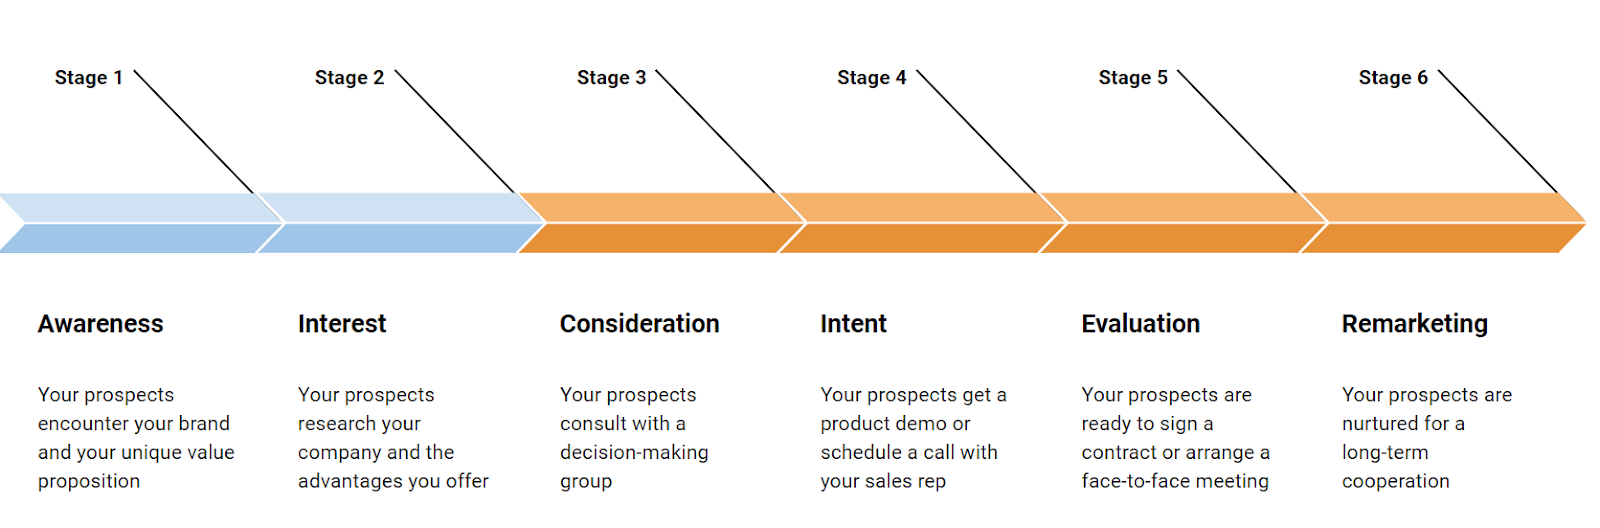 sales-funnel-stages-are-awareness-interest-consideration-intent-evaluation-remarketing